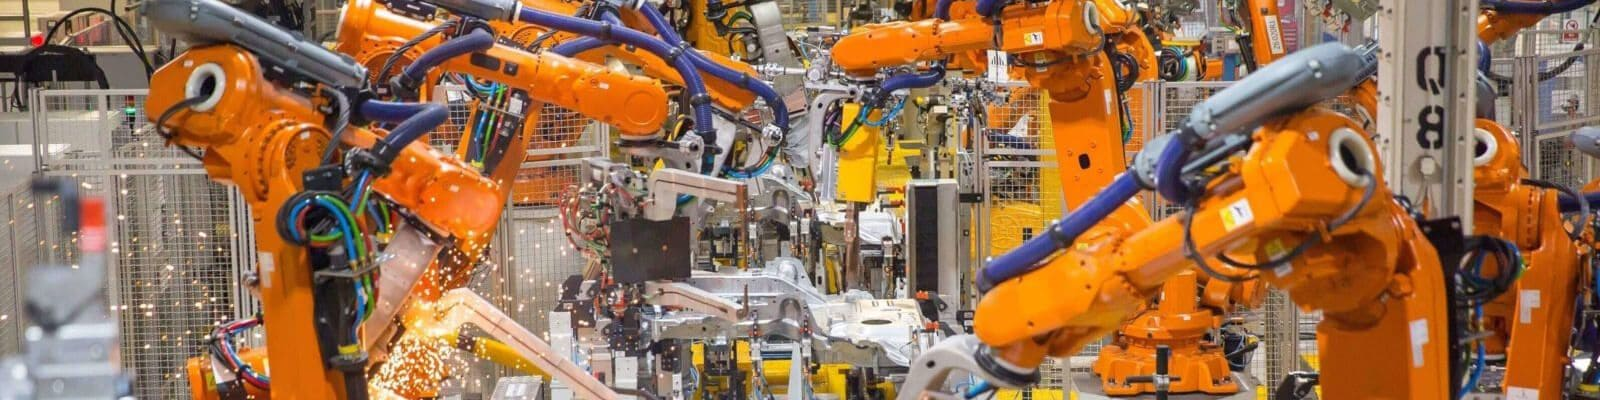 Production line with robotic arms in motion.